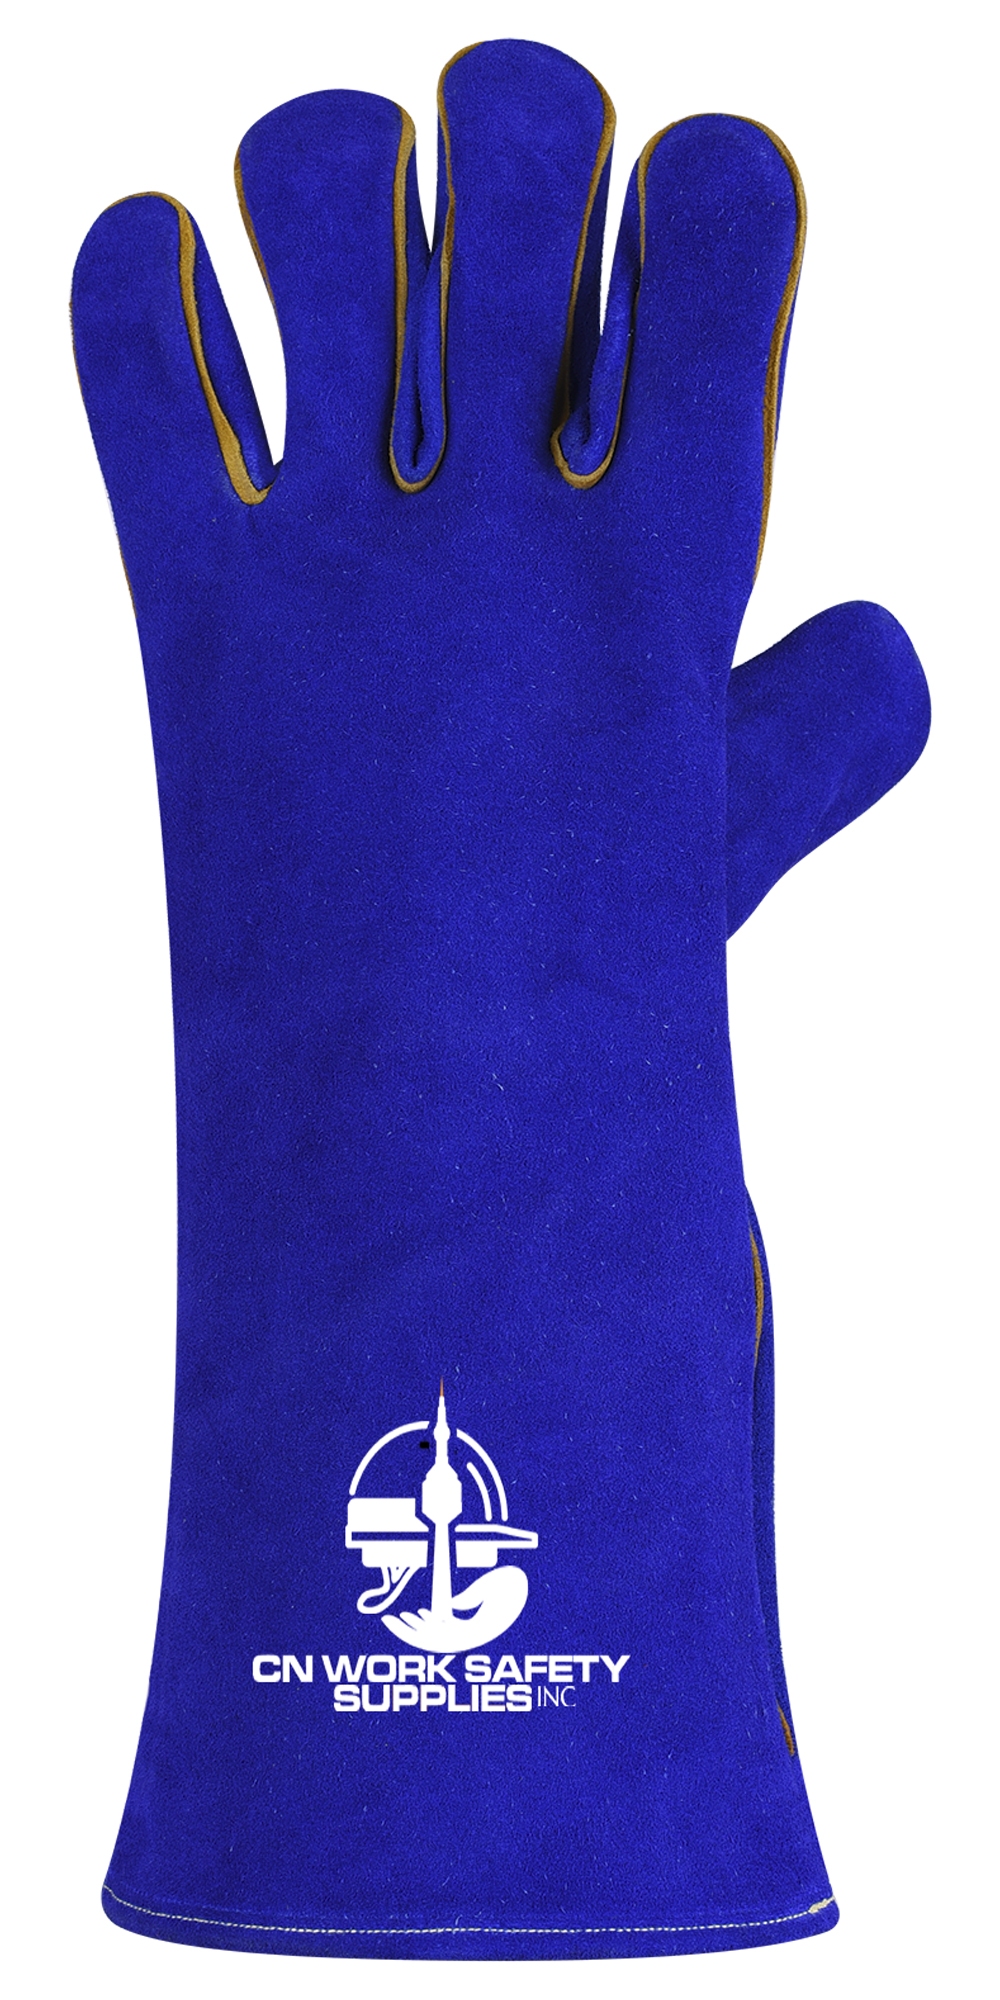 double-palm-welding-gloves